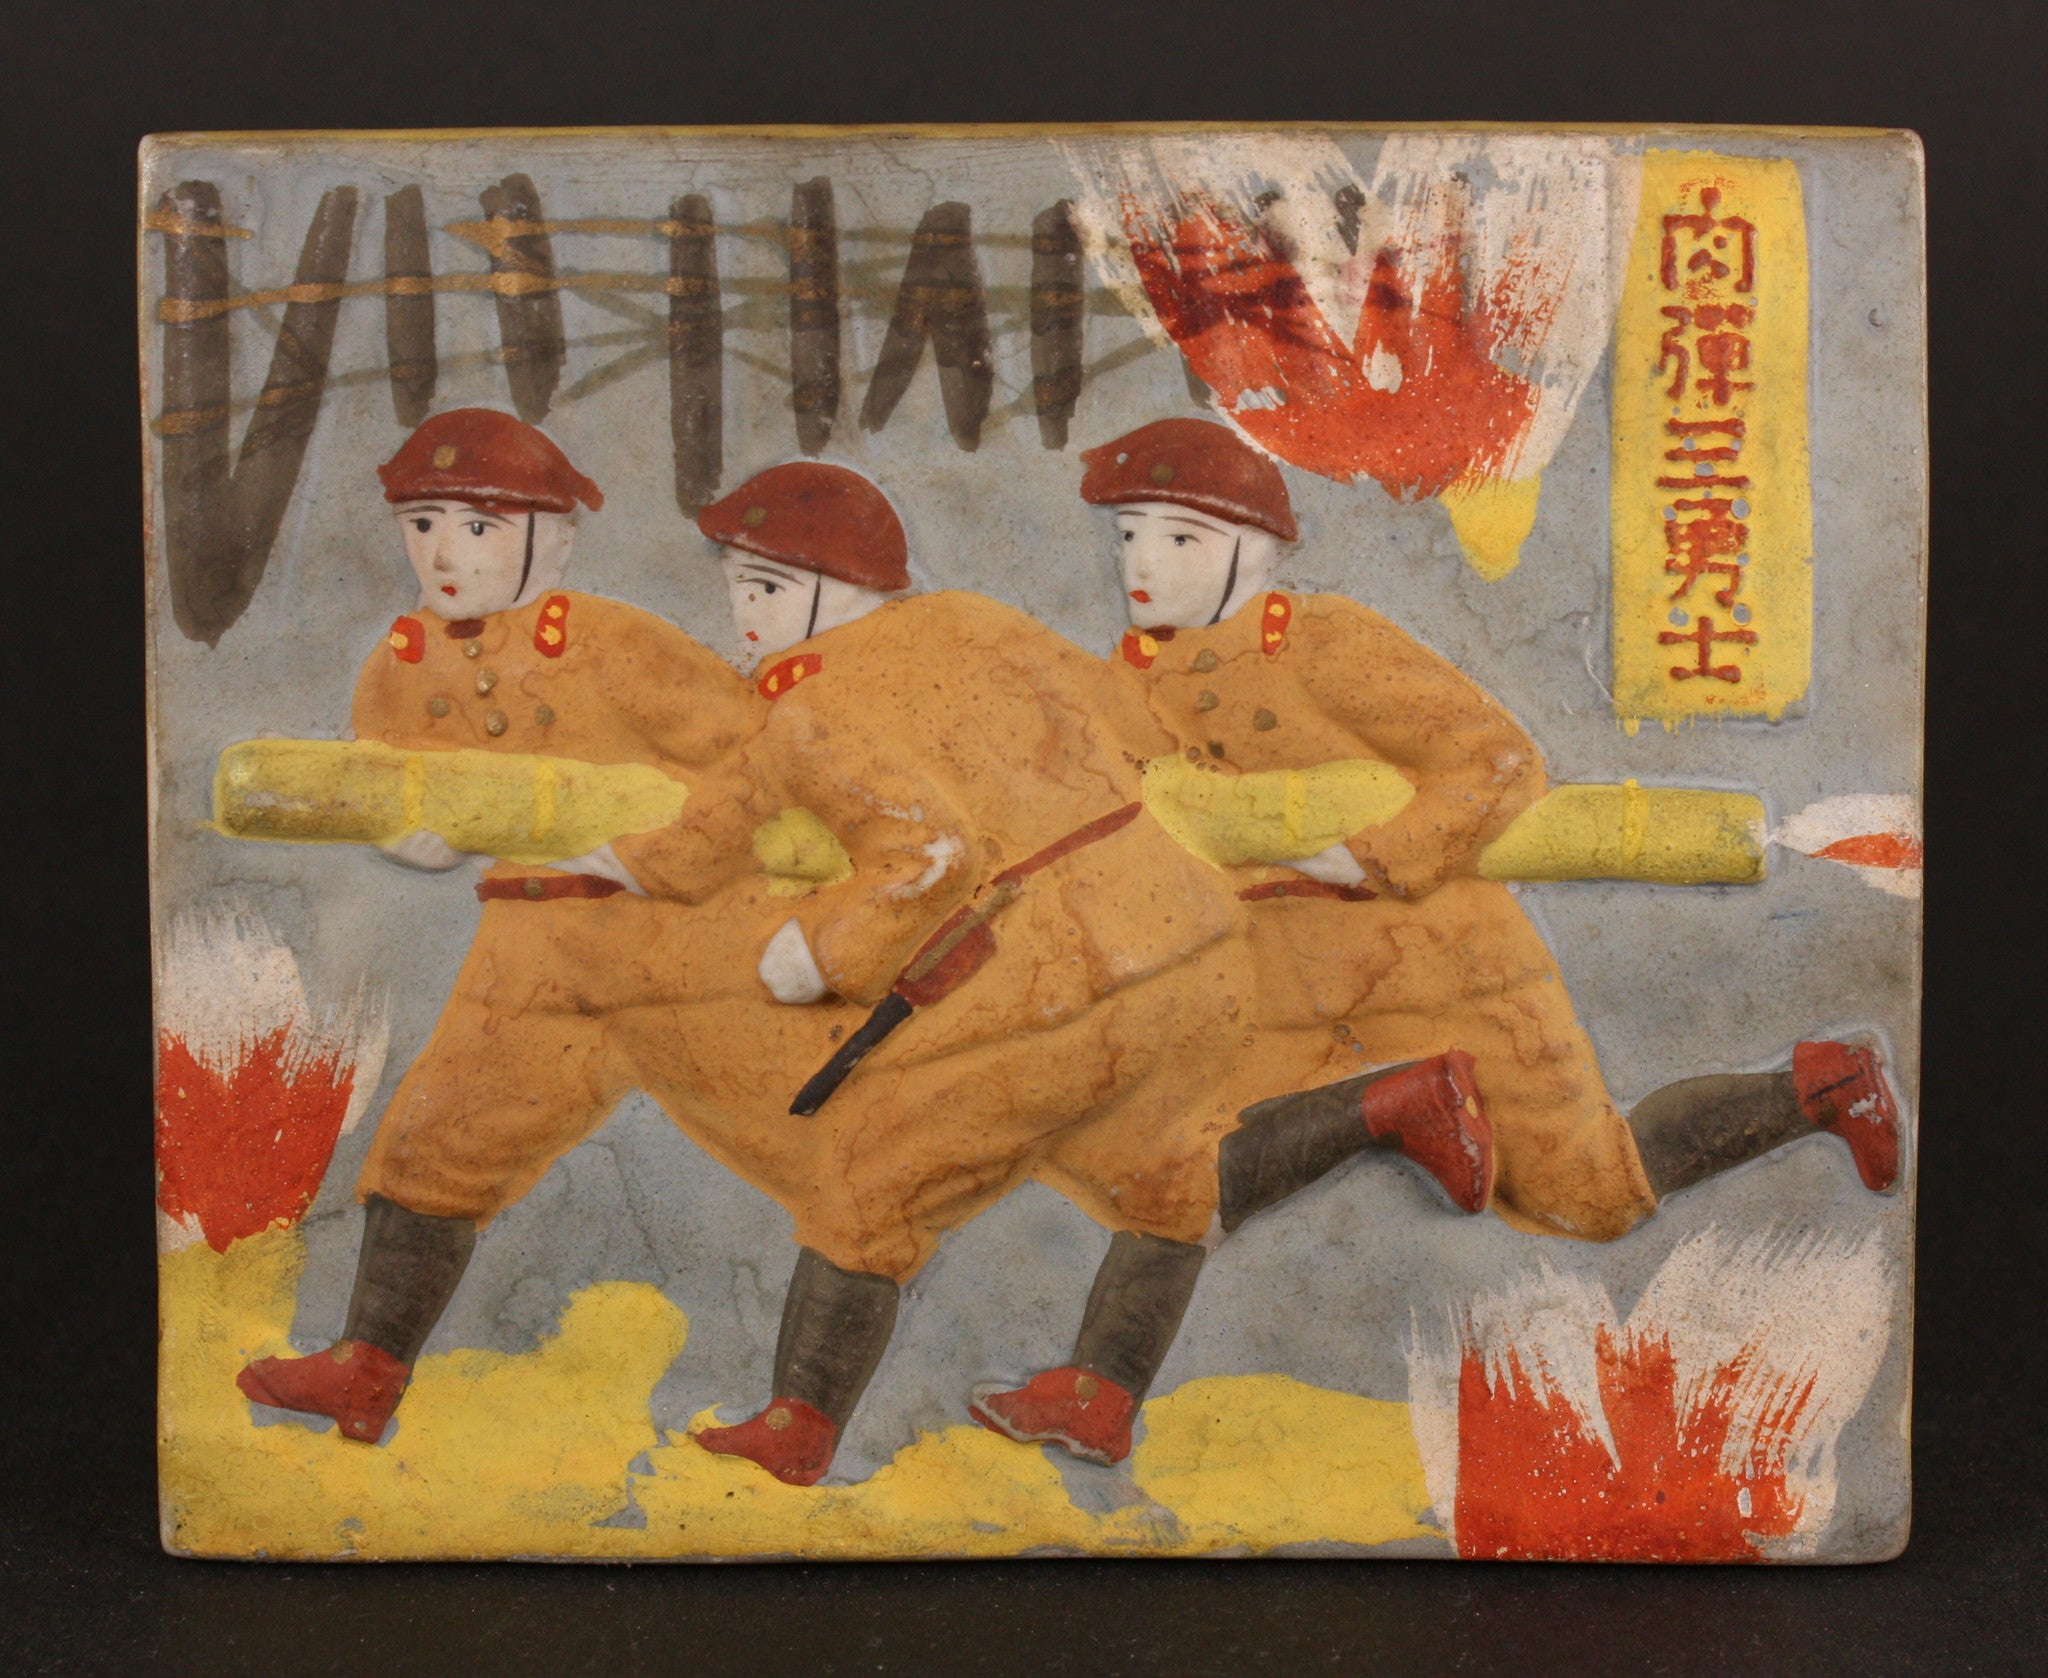 Antique Japanese Military Nikudan Three Soldiers Bomb Commemorative Tile